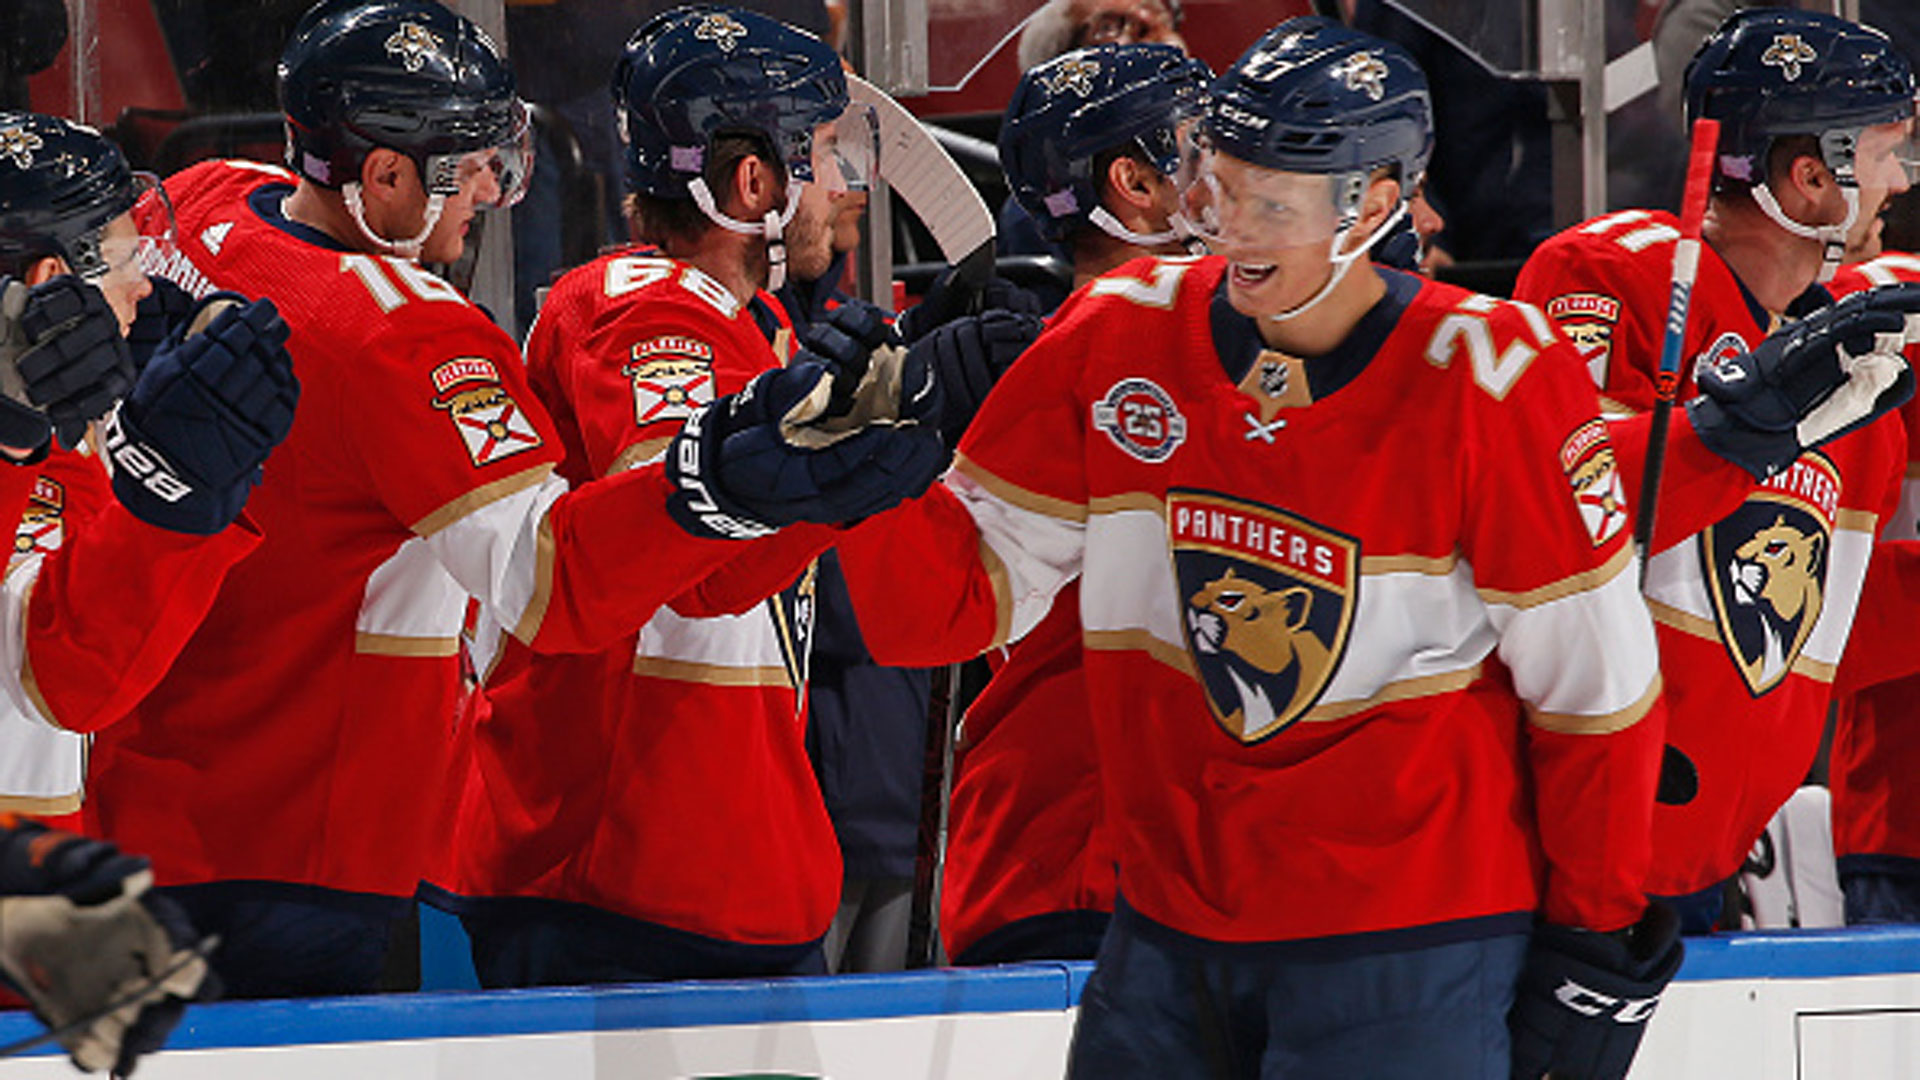 NHL: Oilers 1, Panthers 4